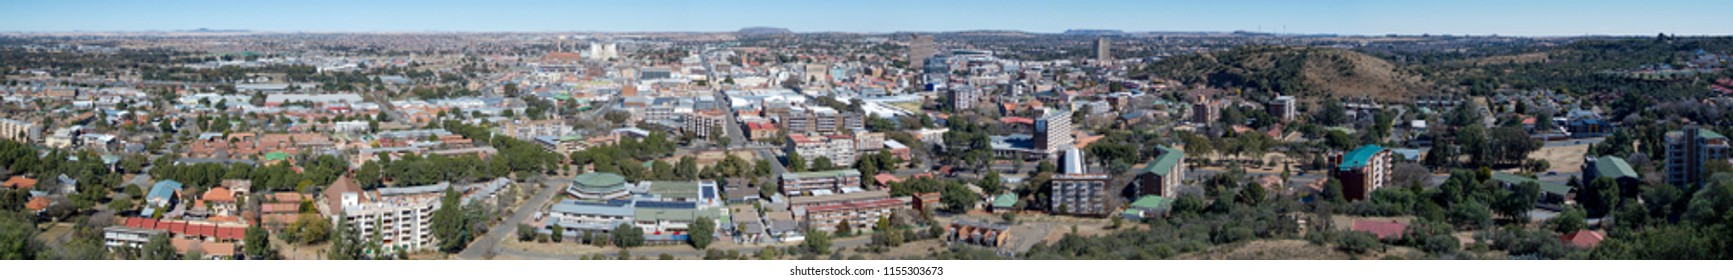 A panoramic image of Bloemfontein, the capital of the Free State, South Africa.